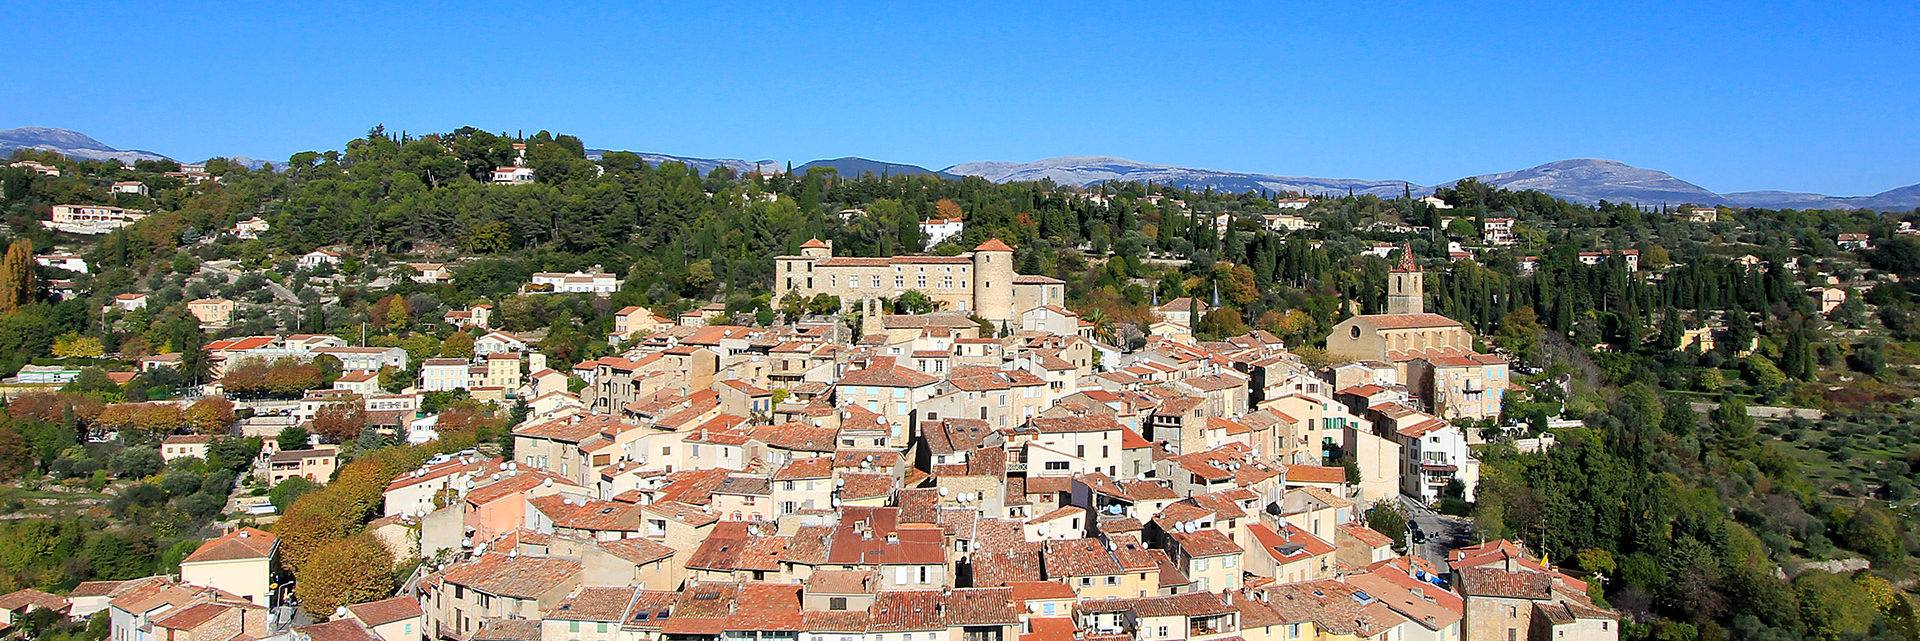 Callian, a hilltop village in the Pays de Fayence